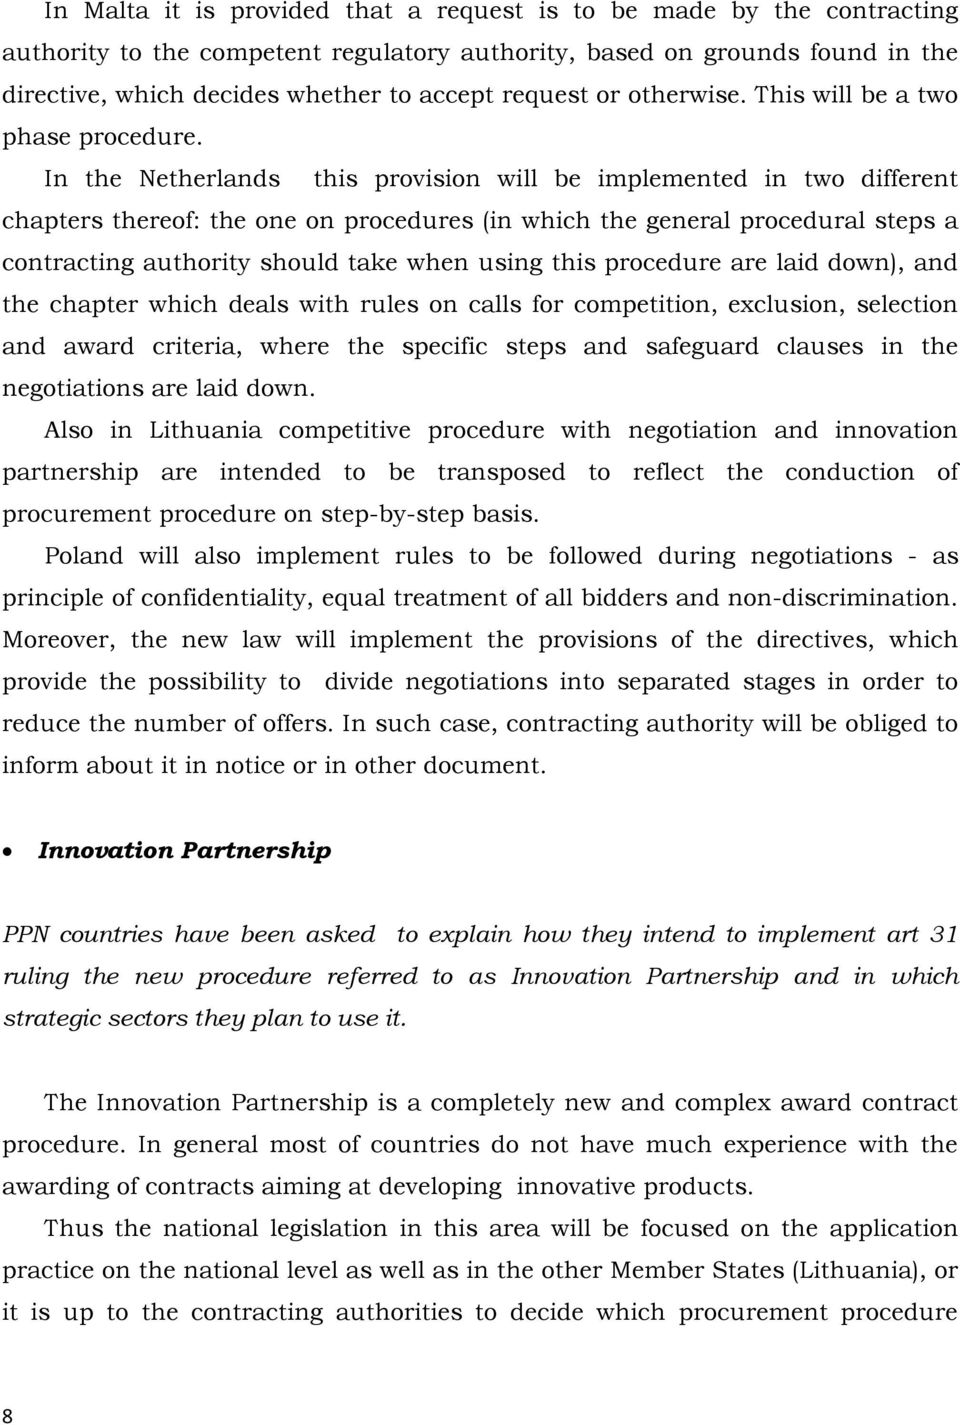 In the Netherlands this provision will be implemented in two different chapters thereof: the one on procedures (in which the general procedural steps a contracting authority should take when using